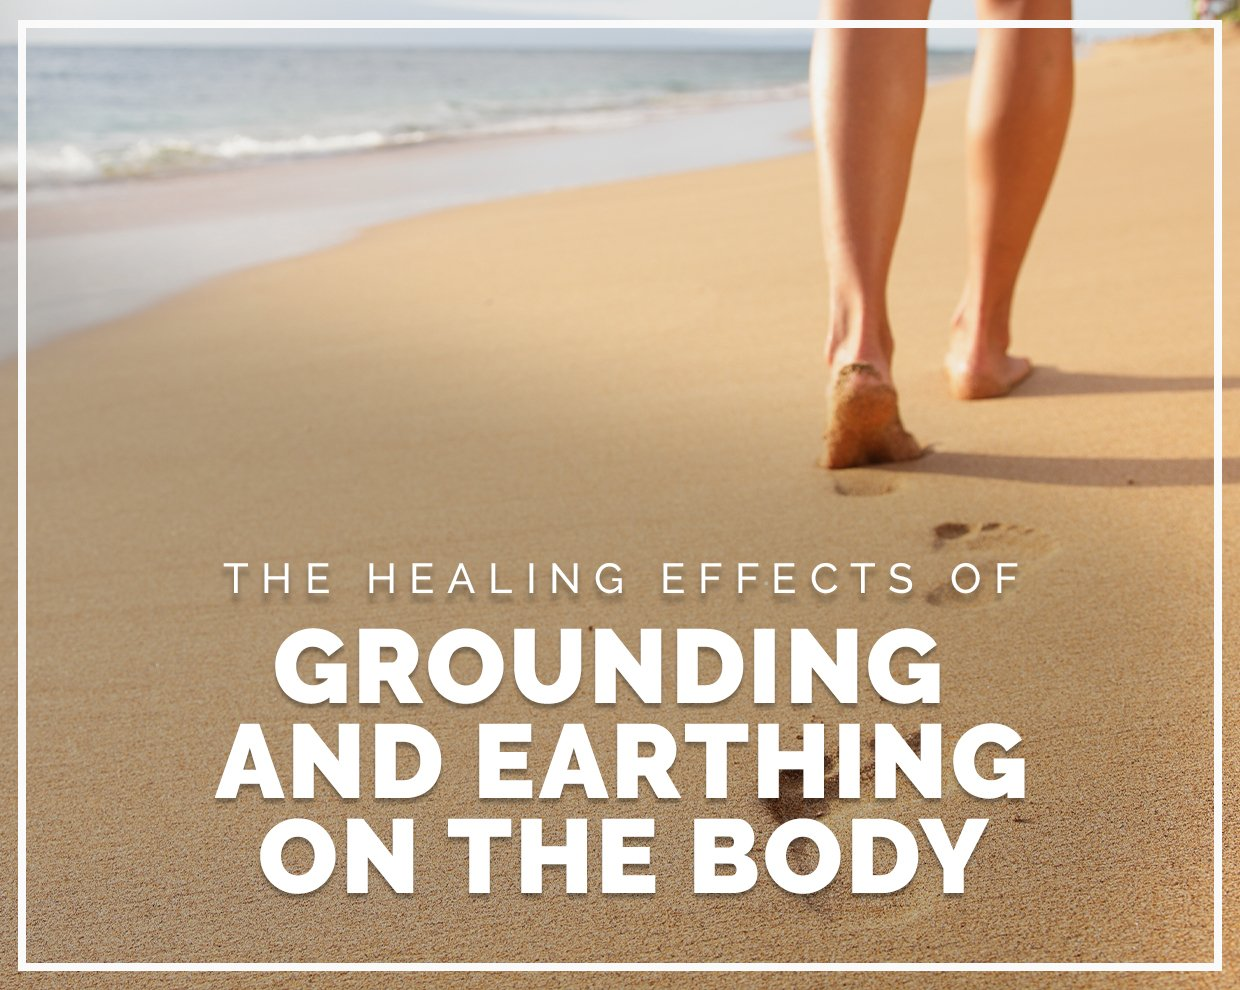 The healing effects of grounding and earthing on the body